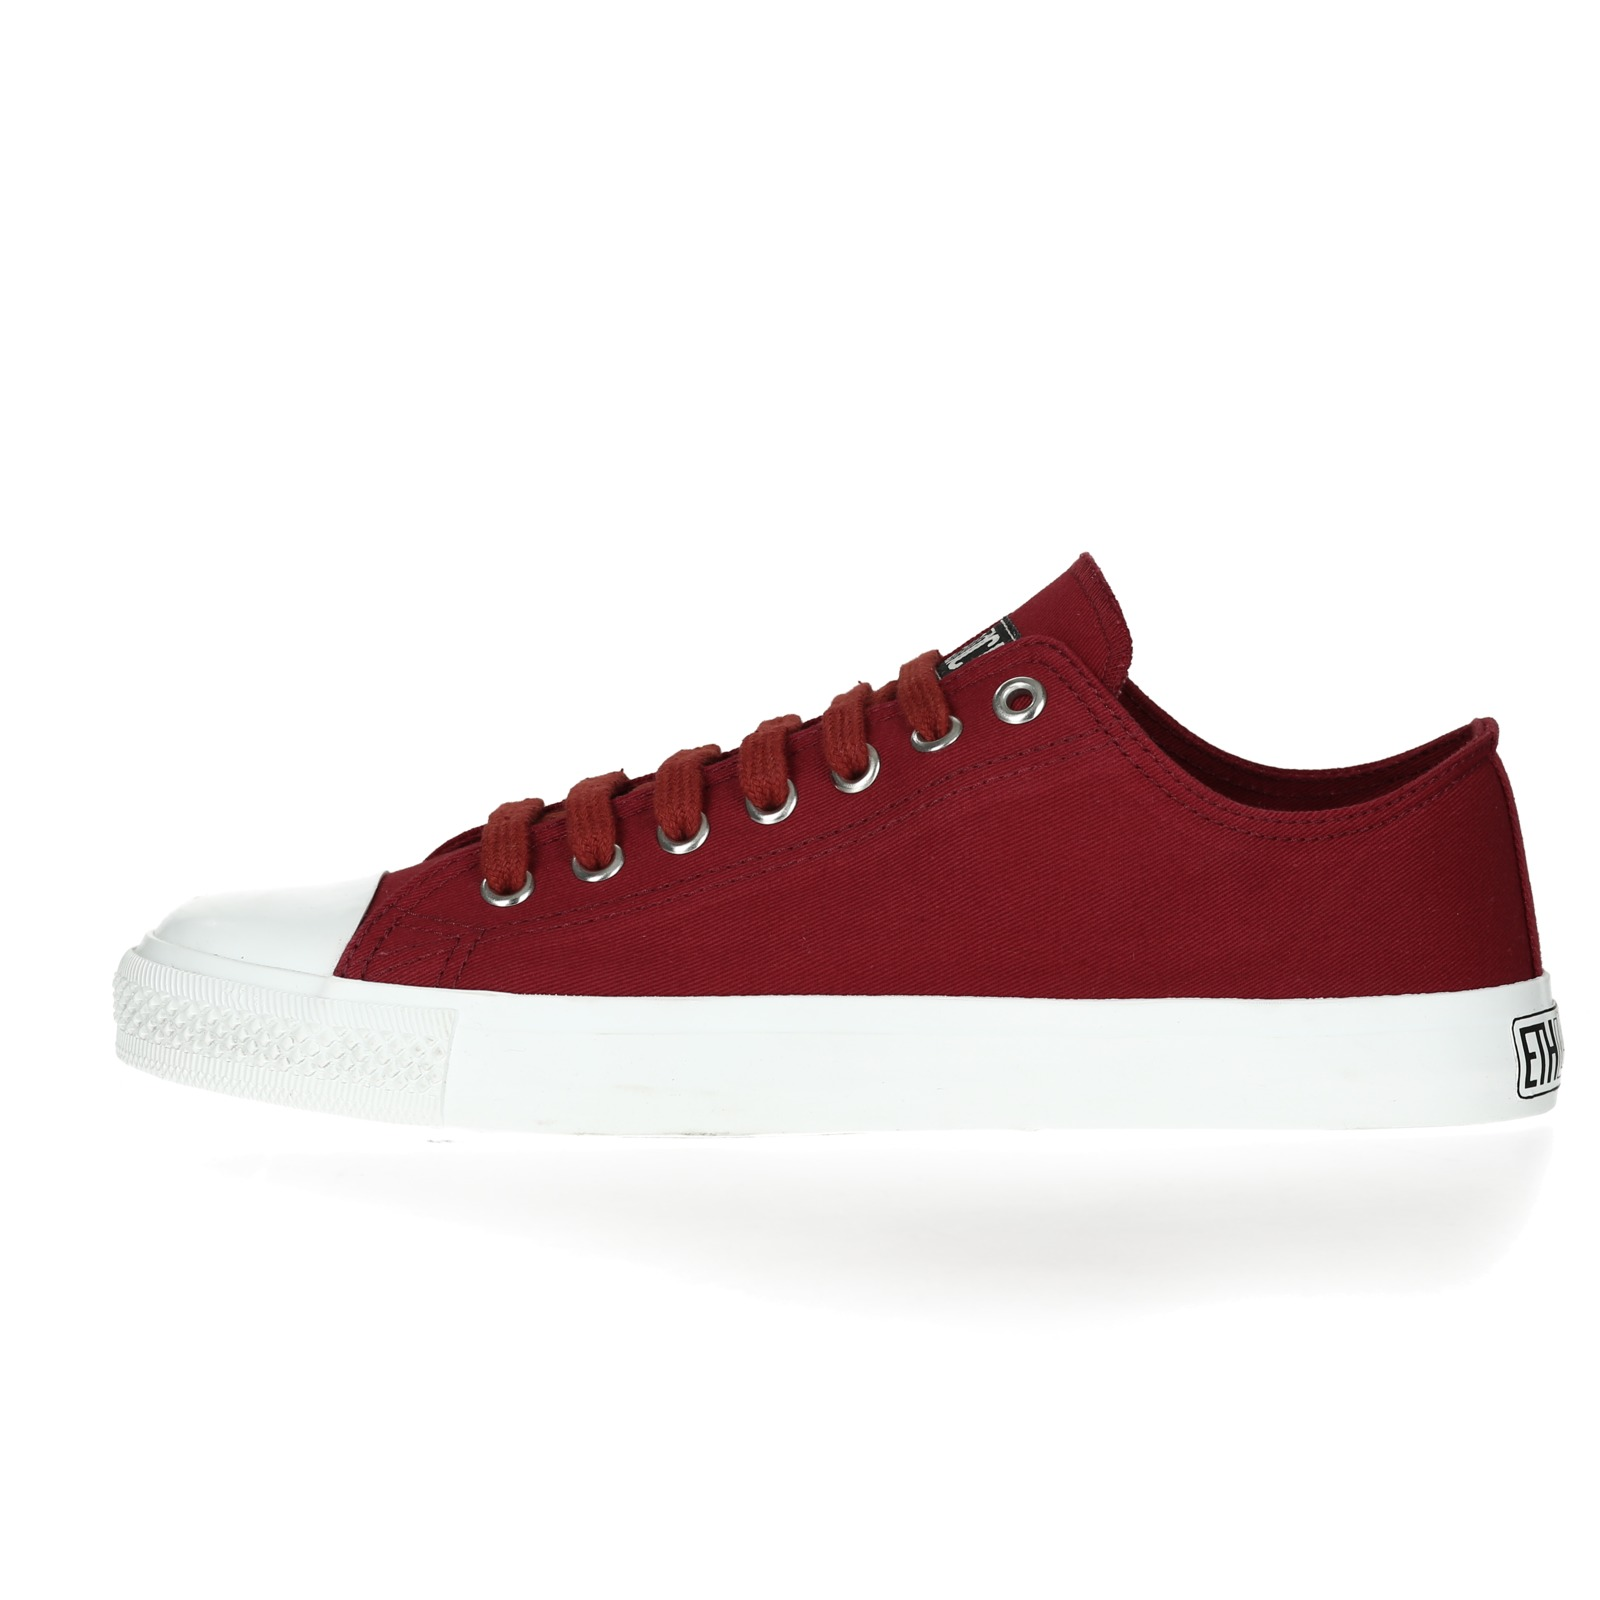 FAIR TRAINER WHITE CAP LoCut COLLECTION 17 TRUE BLOOD| JUST WHITE – OUTLET